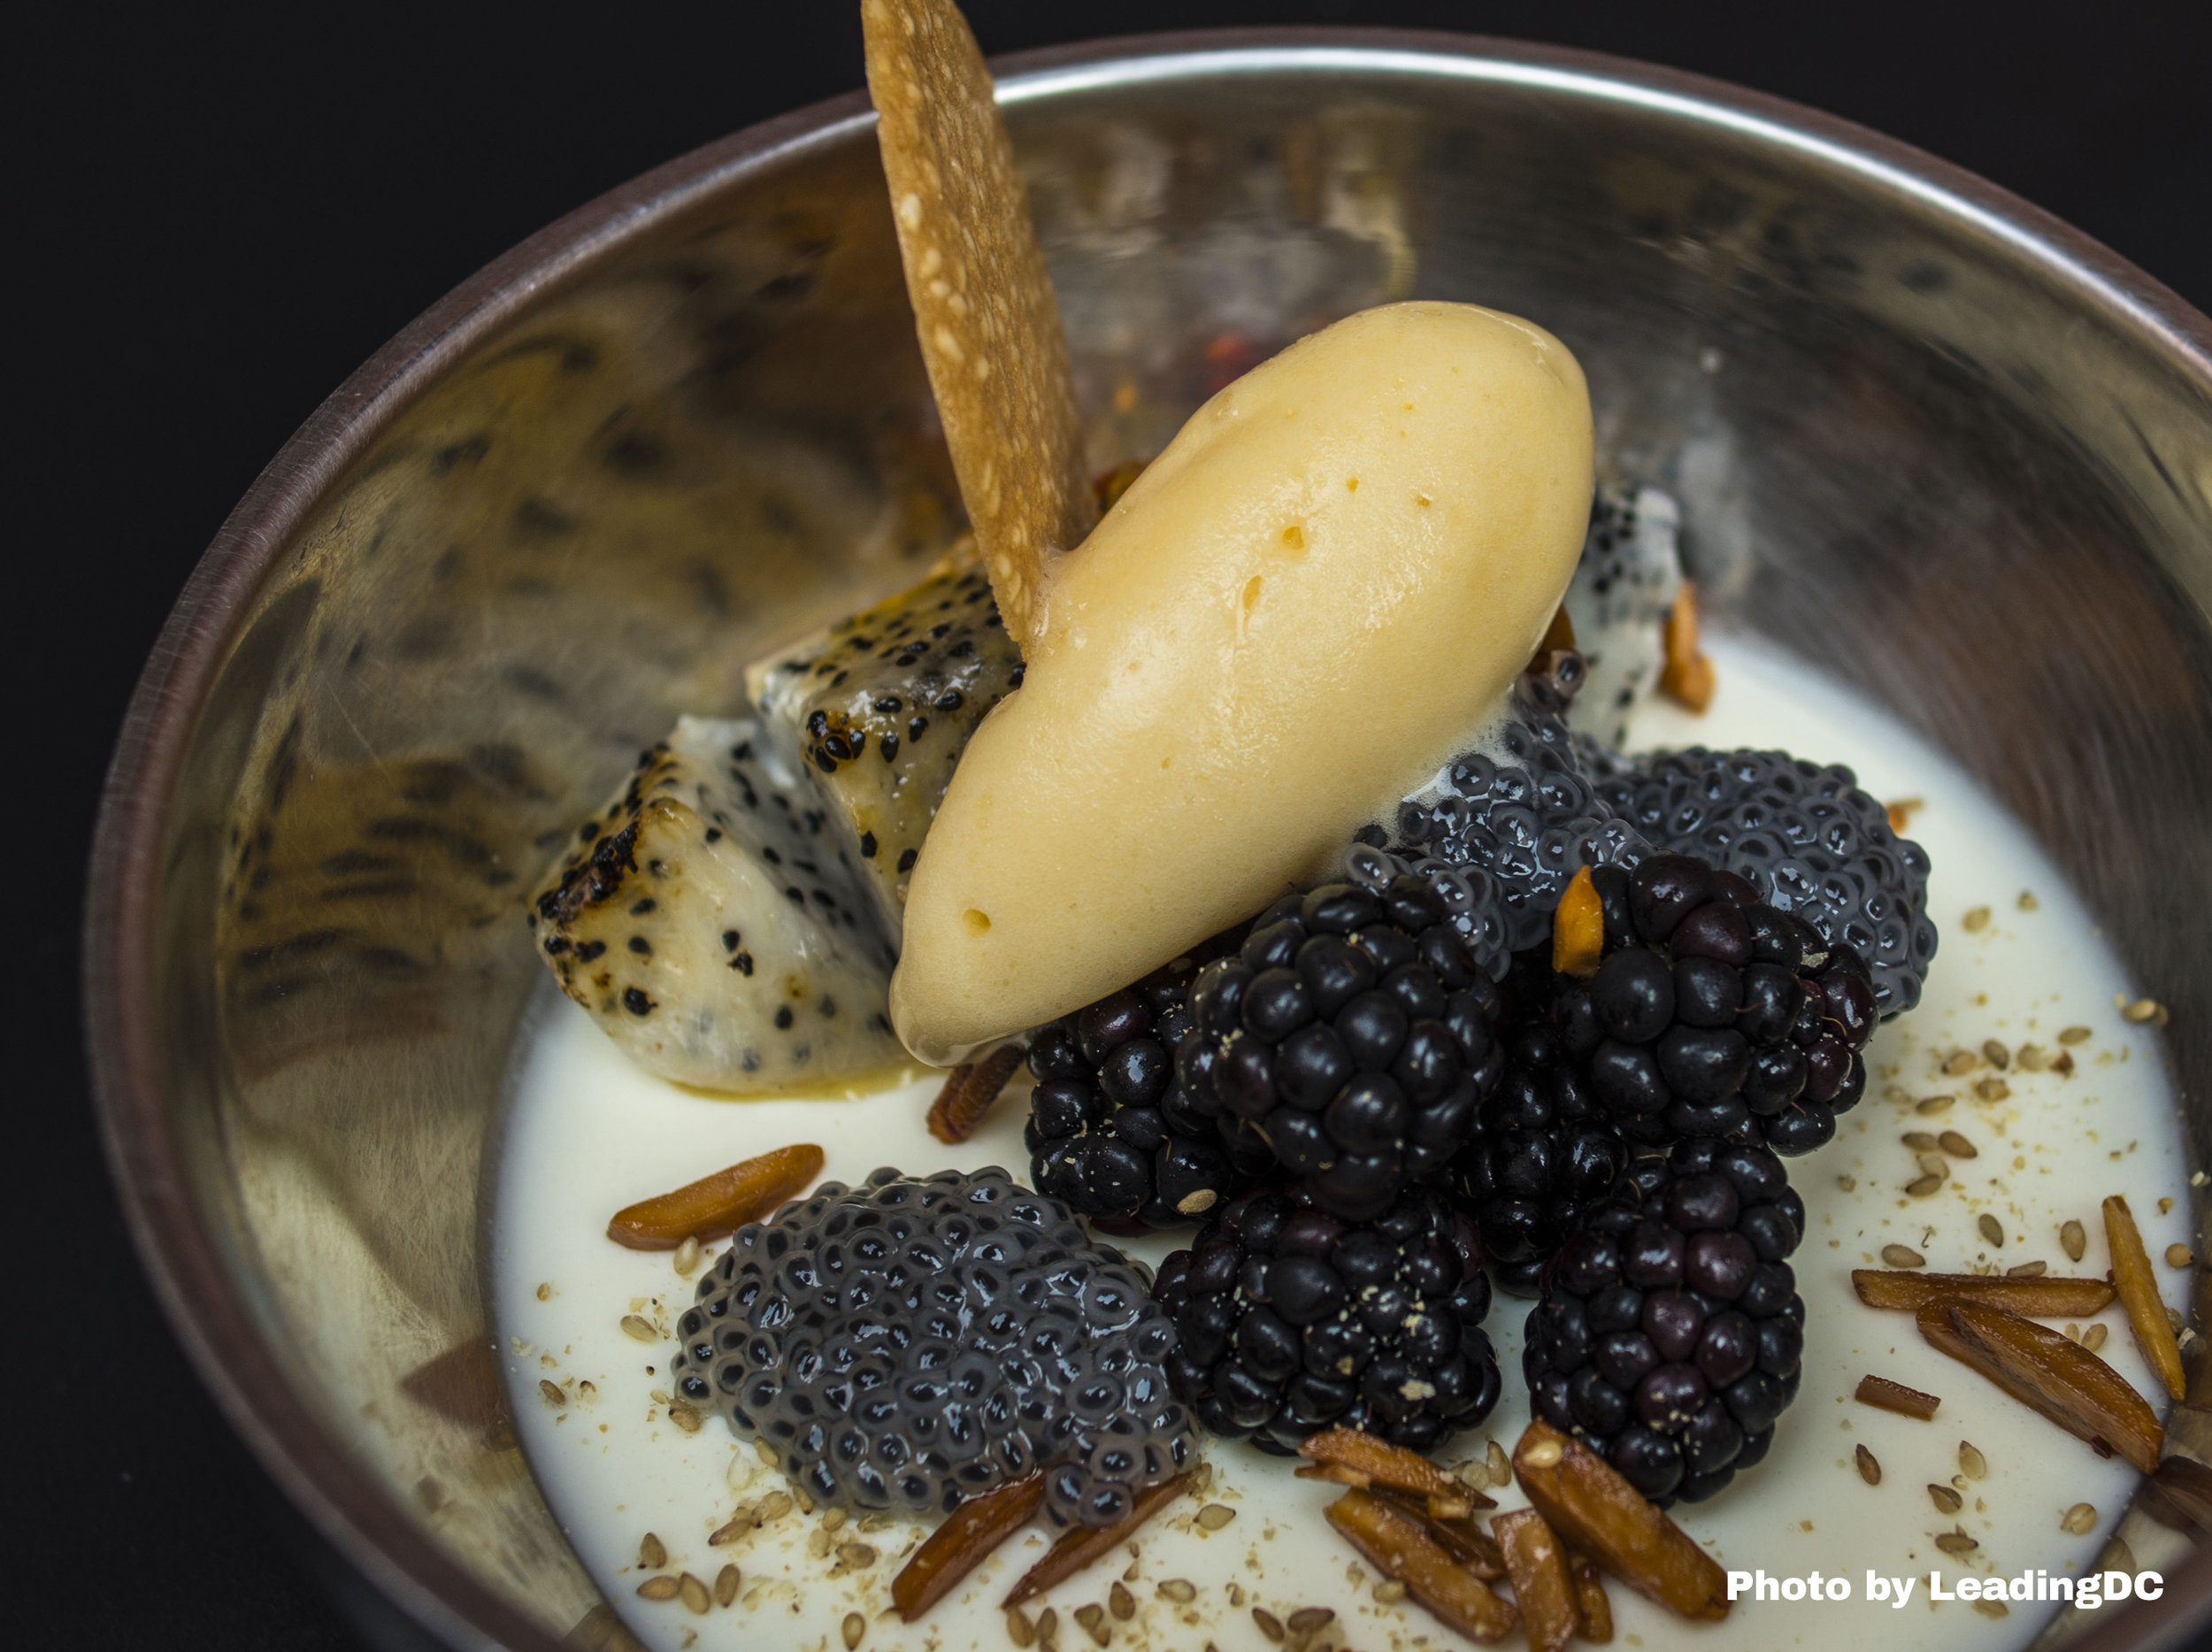 Sesame custard with lemongrass infused basil seeds and candied almonds